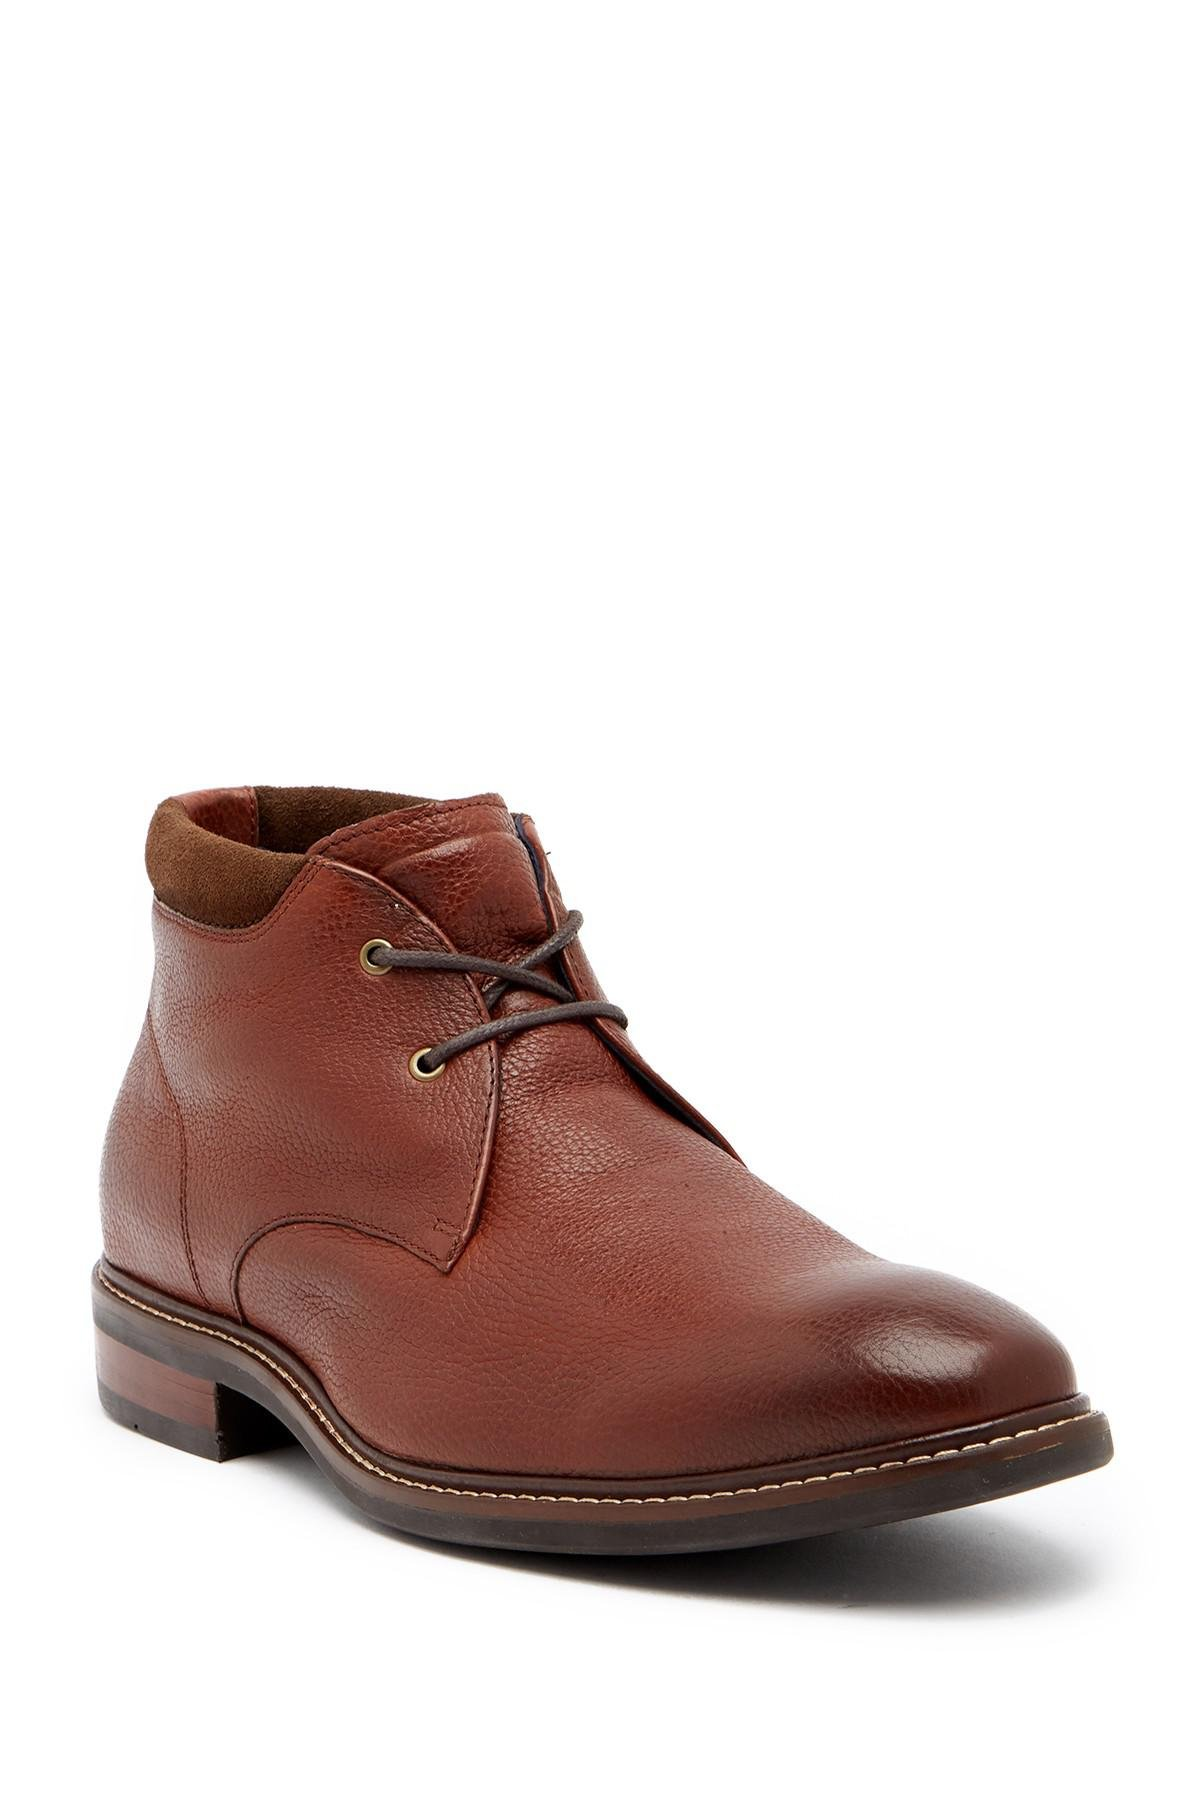 Cole Haan Leather Watson Chukka Ii Boot In Brown For Men